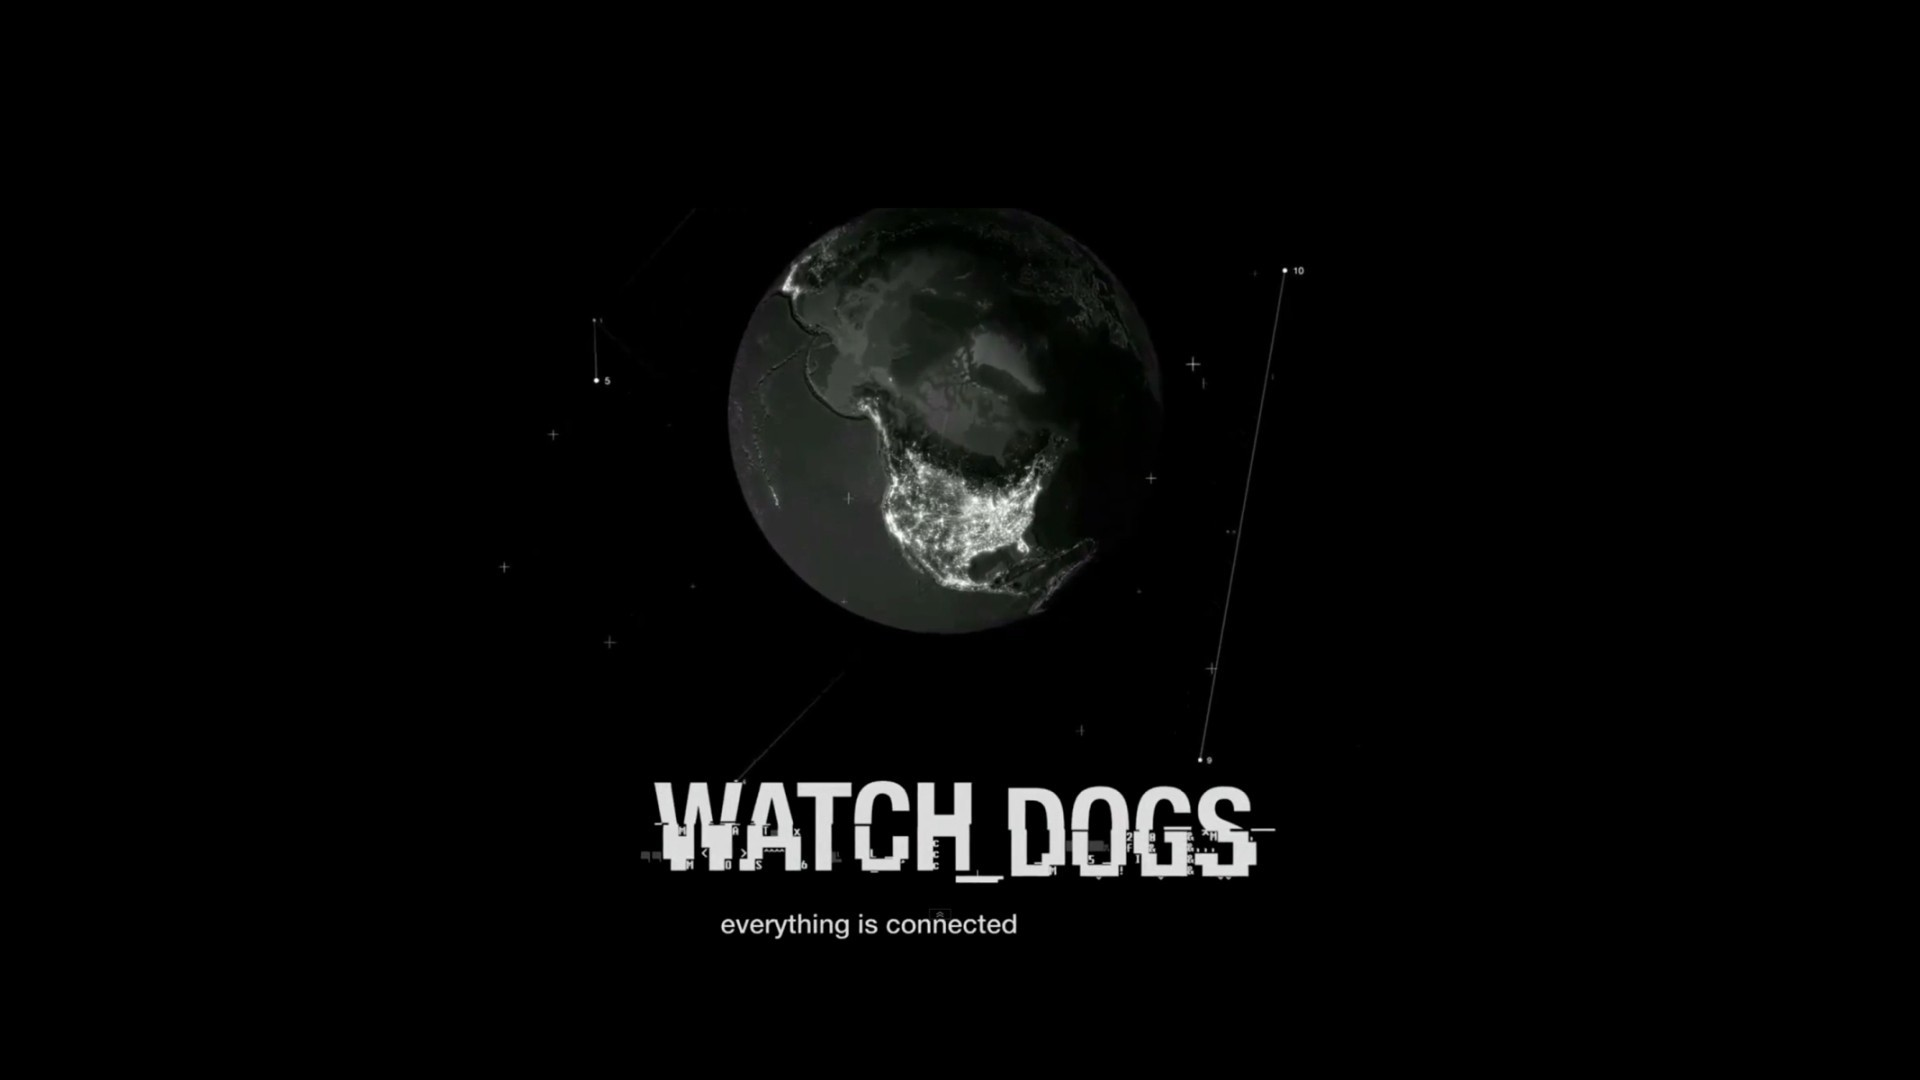 Aiden Pearce Earth Ubisoft Watch Dogs connection wallpaper (#2000384) /  Wallbase.cc